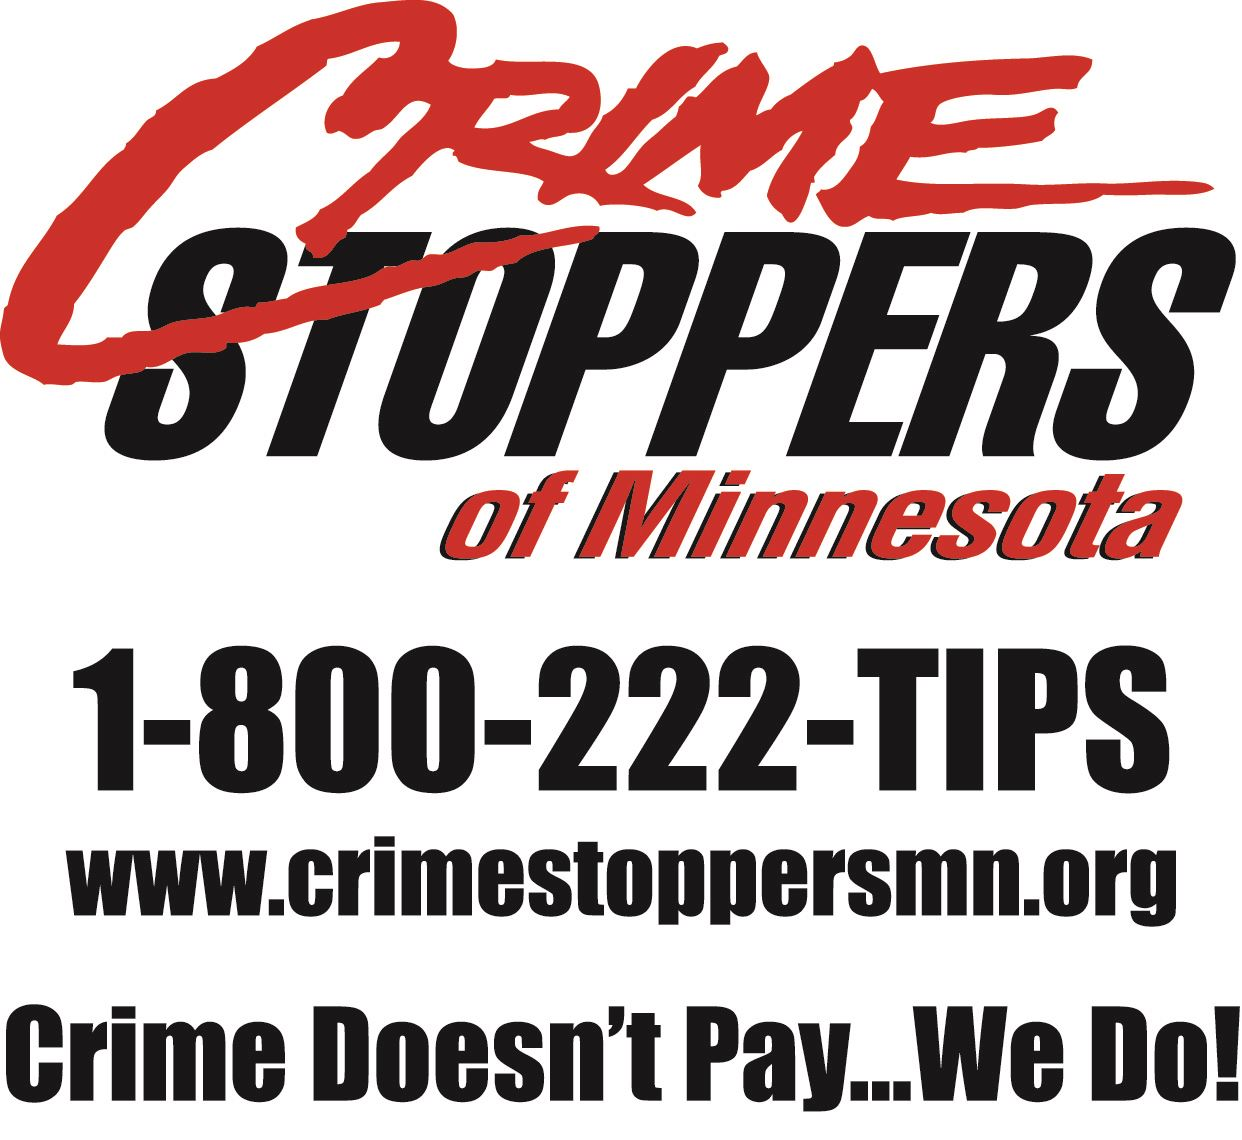 Crime Stoppers of Minnesota, 1-800-222-TIPS, Crime Doesn't Pay... We Do!